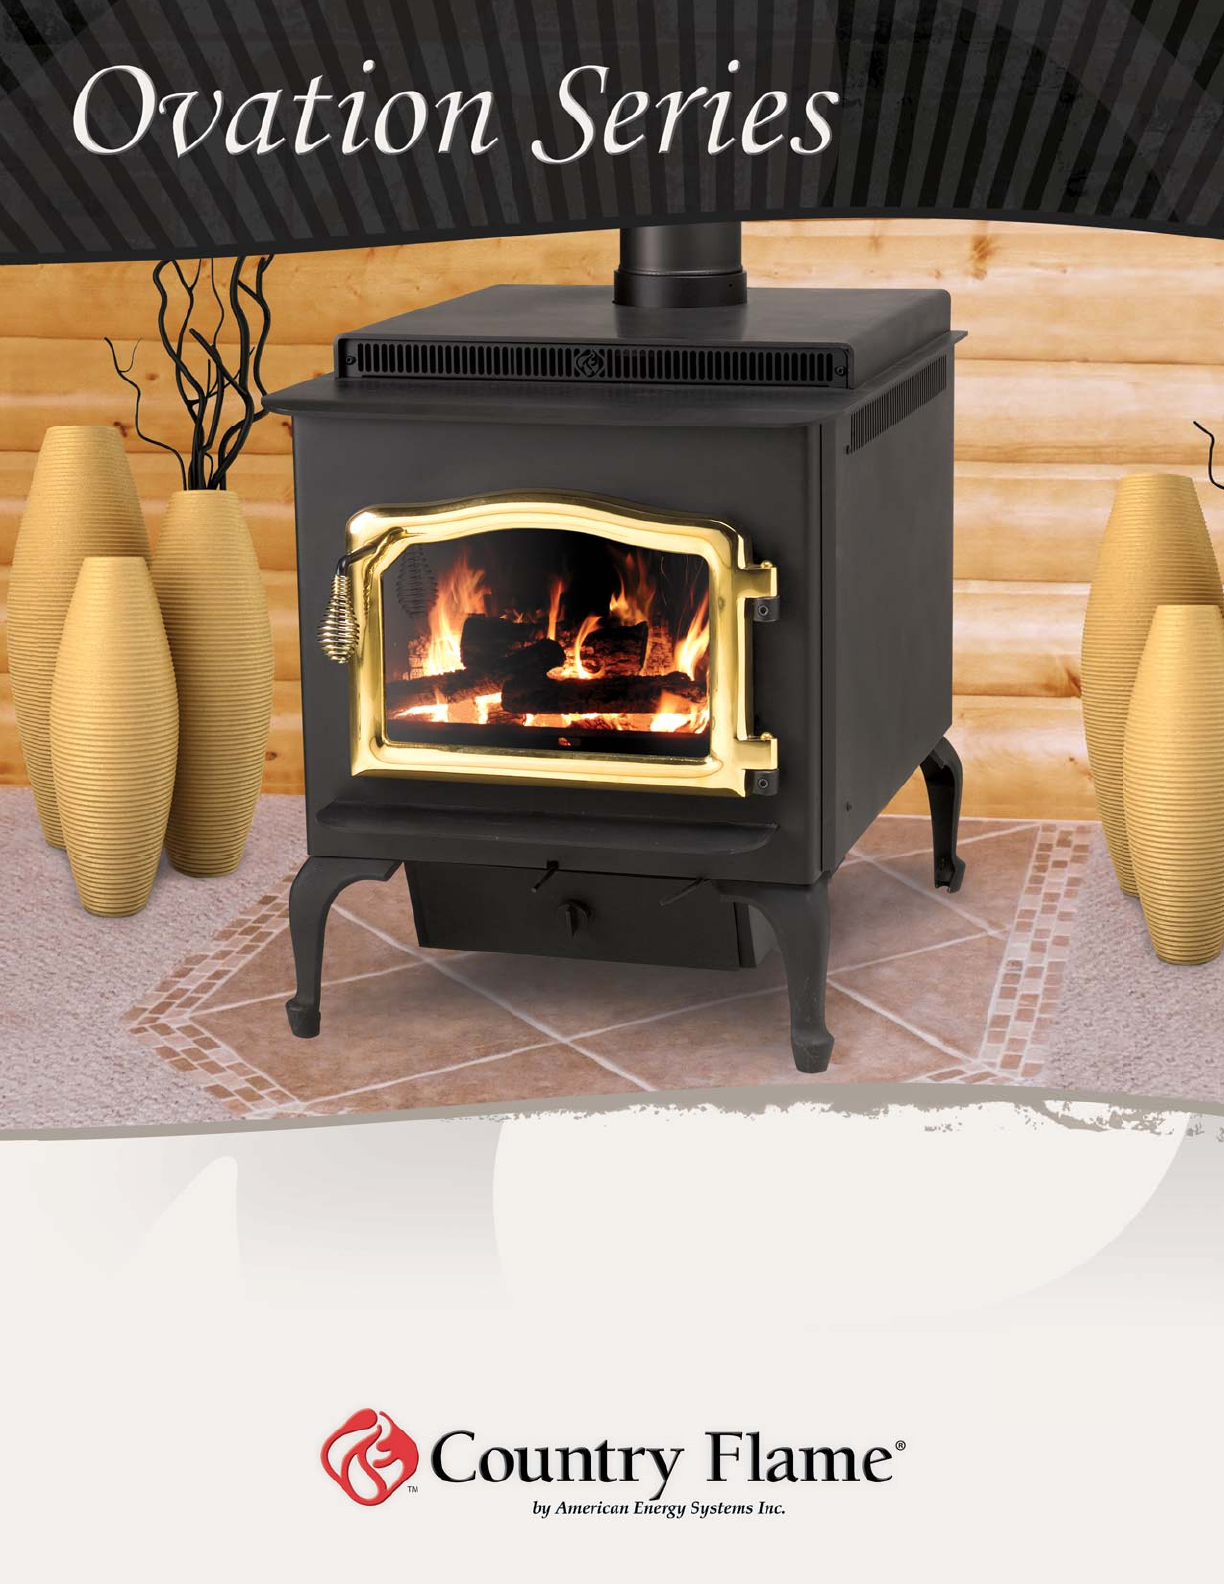 Country flame wood stove insert - Insert Height